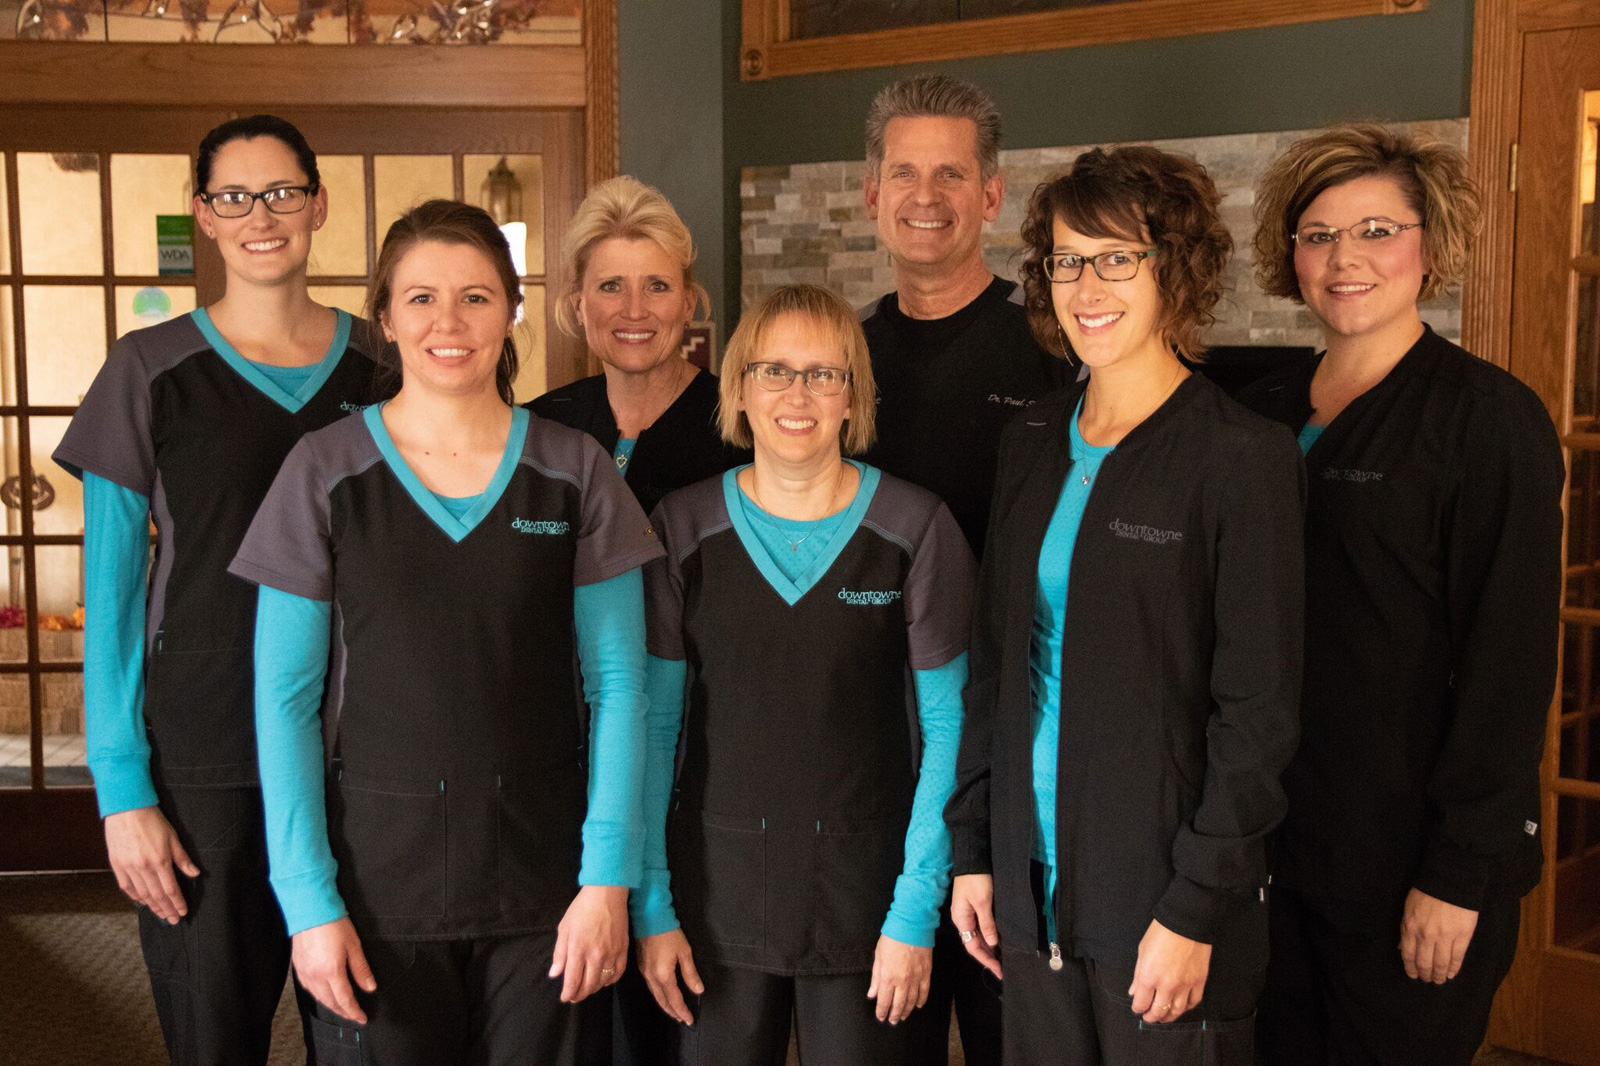 Downtowne Dental Group